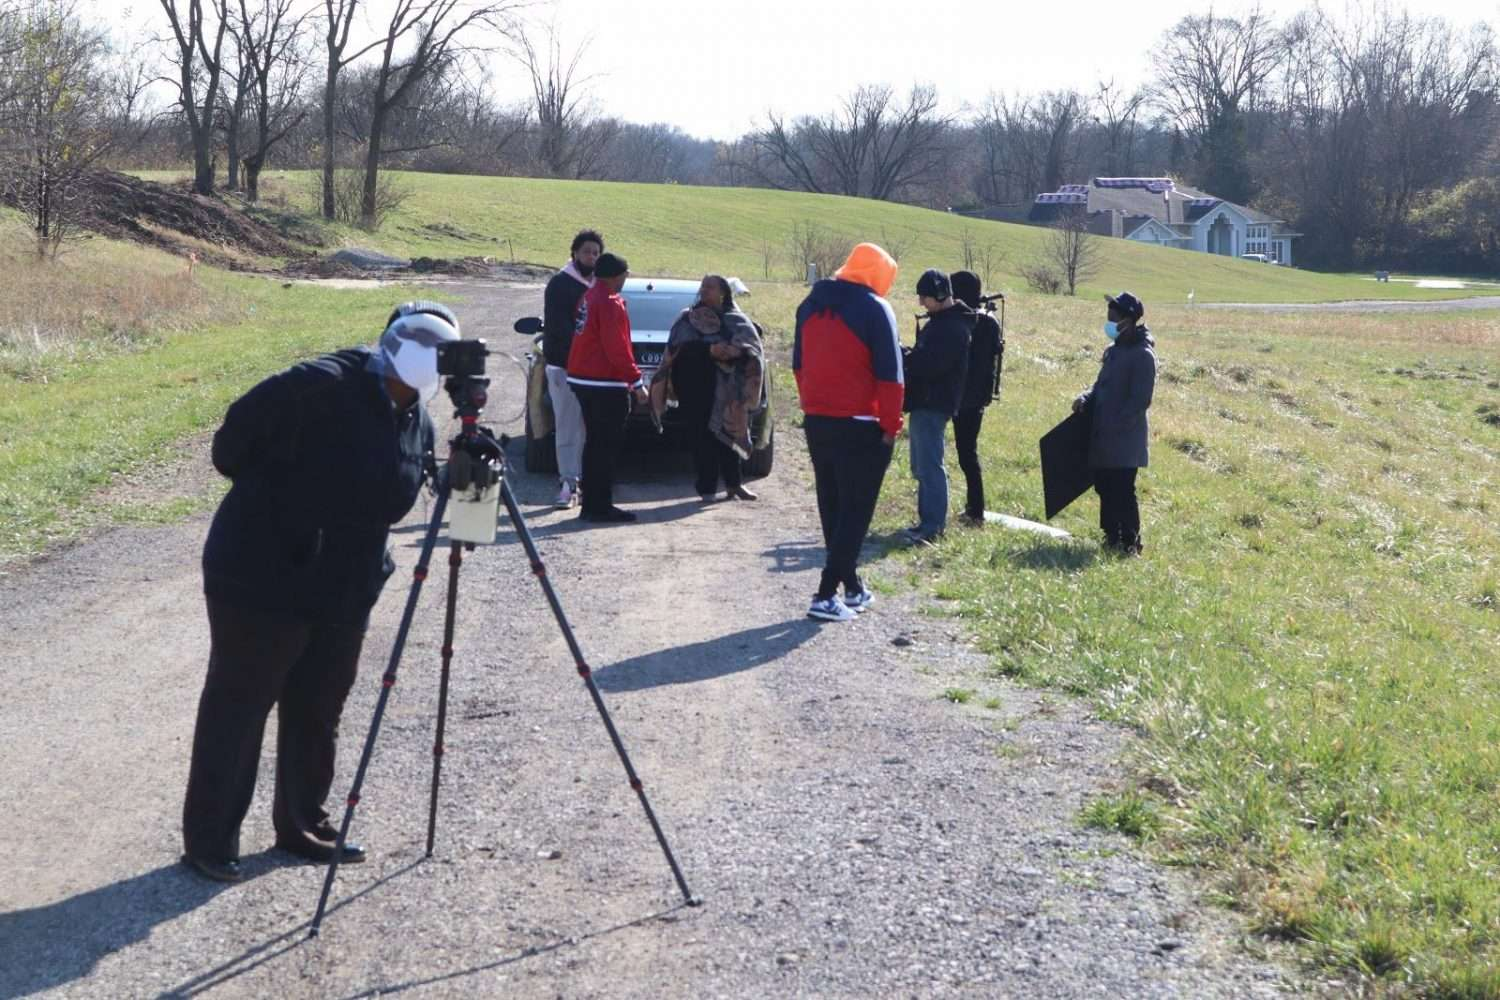 Monica R. Butler in her mask at the camera observes the previous shot taking place during the production on November 27, 2020 as Producer and Director Craig Thomas instructs the talent in the background. Photo credit: Purposed Productions